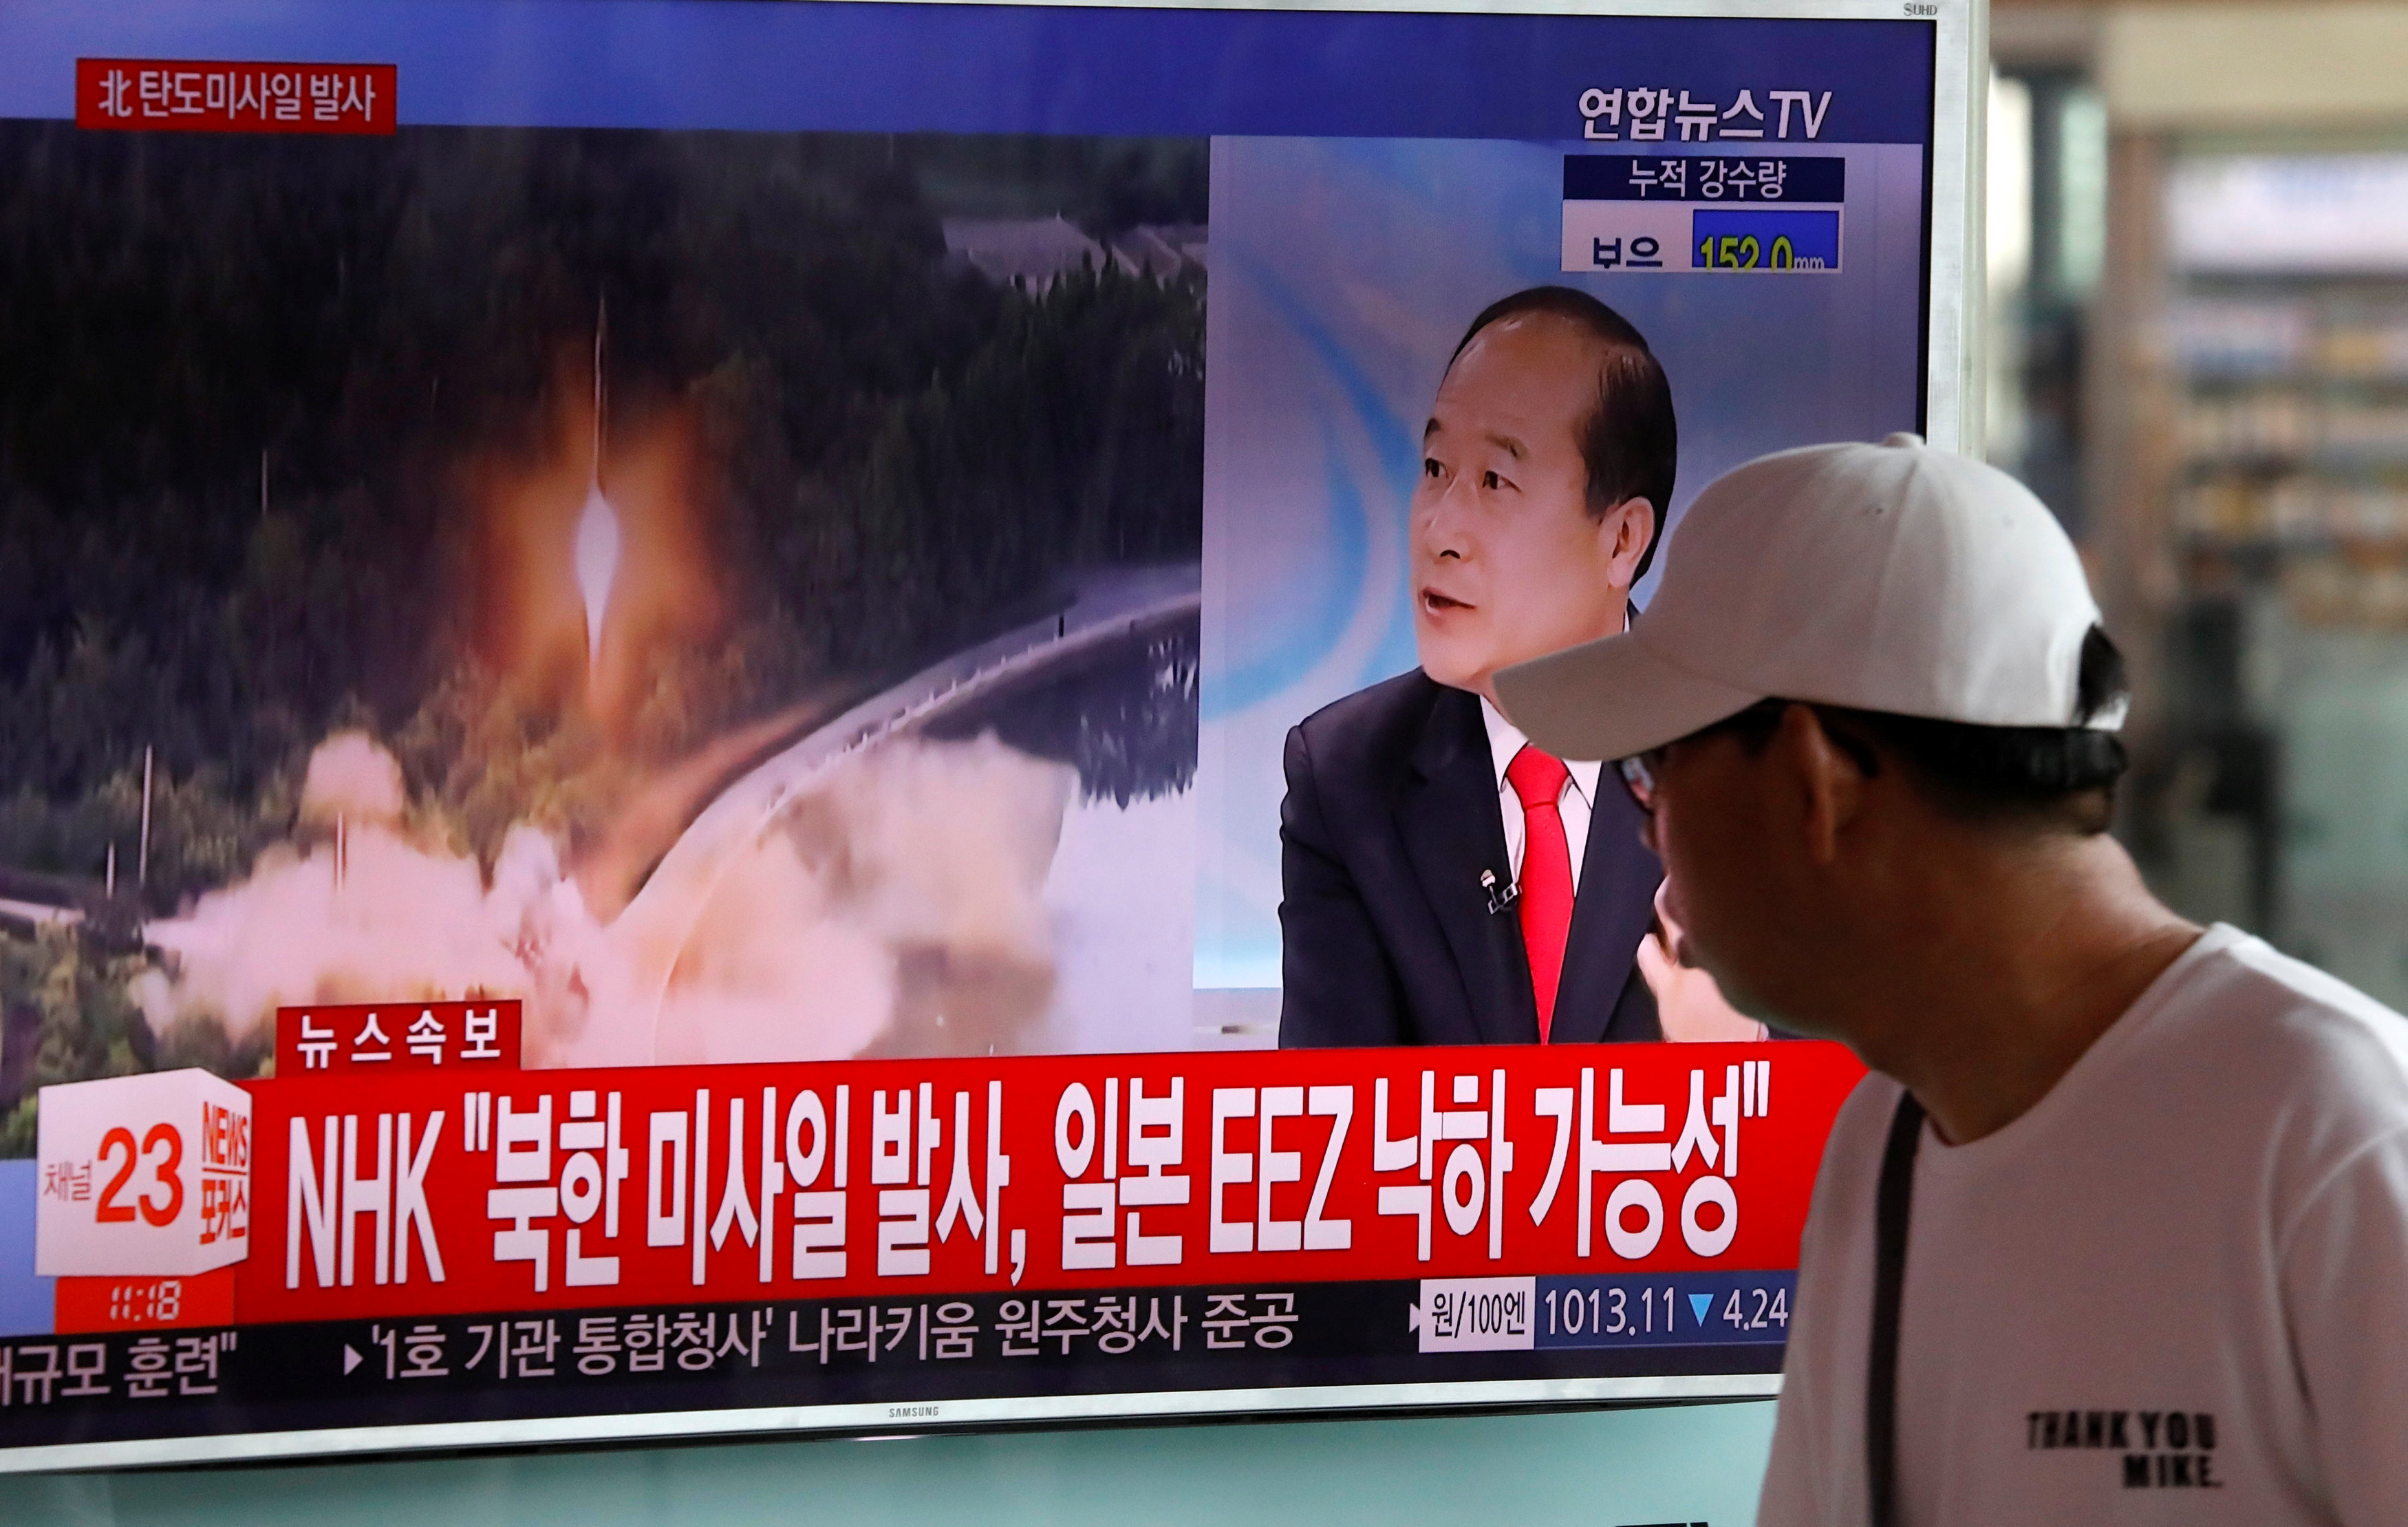 A man watches a TV broadcast of a news report on North Korea's ballistic missile test, at a railway station in Seoul, South Korea, July 4, 2017. REUTERS/Kim Hong-Ji